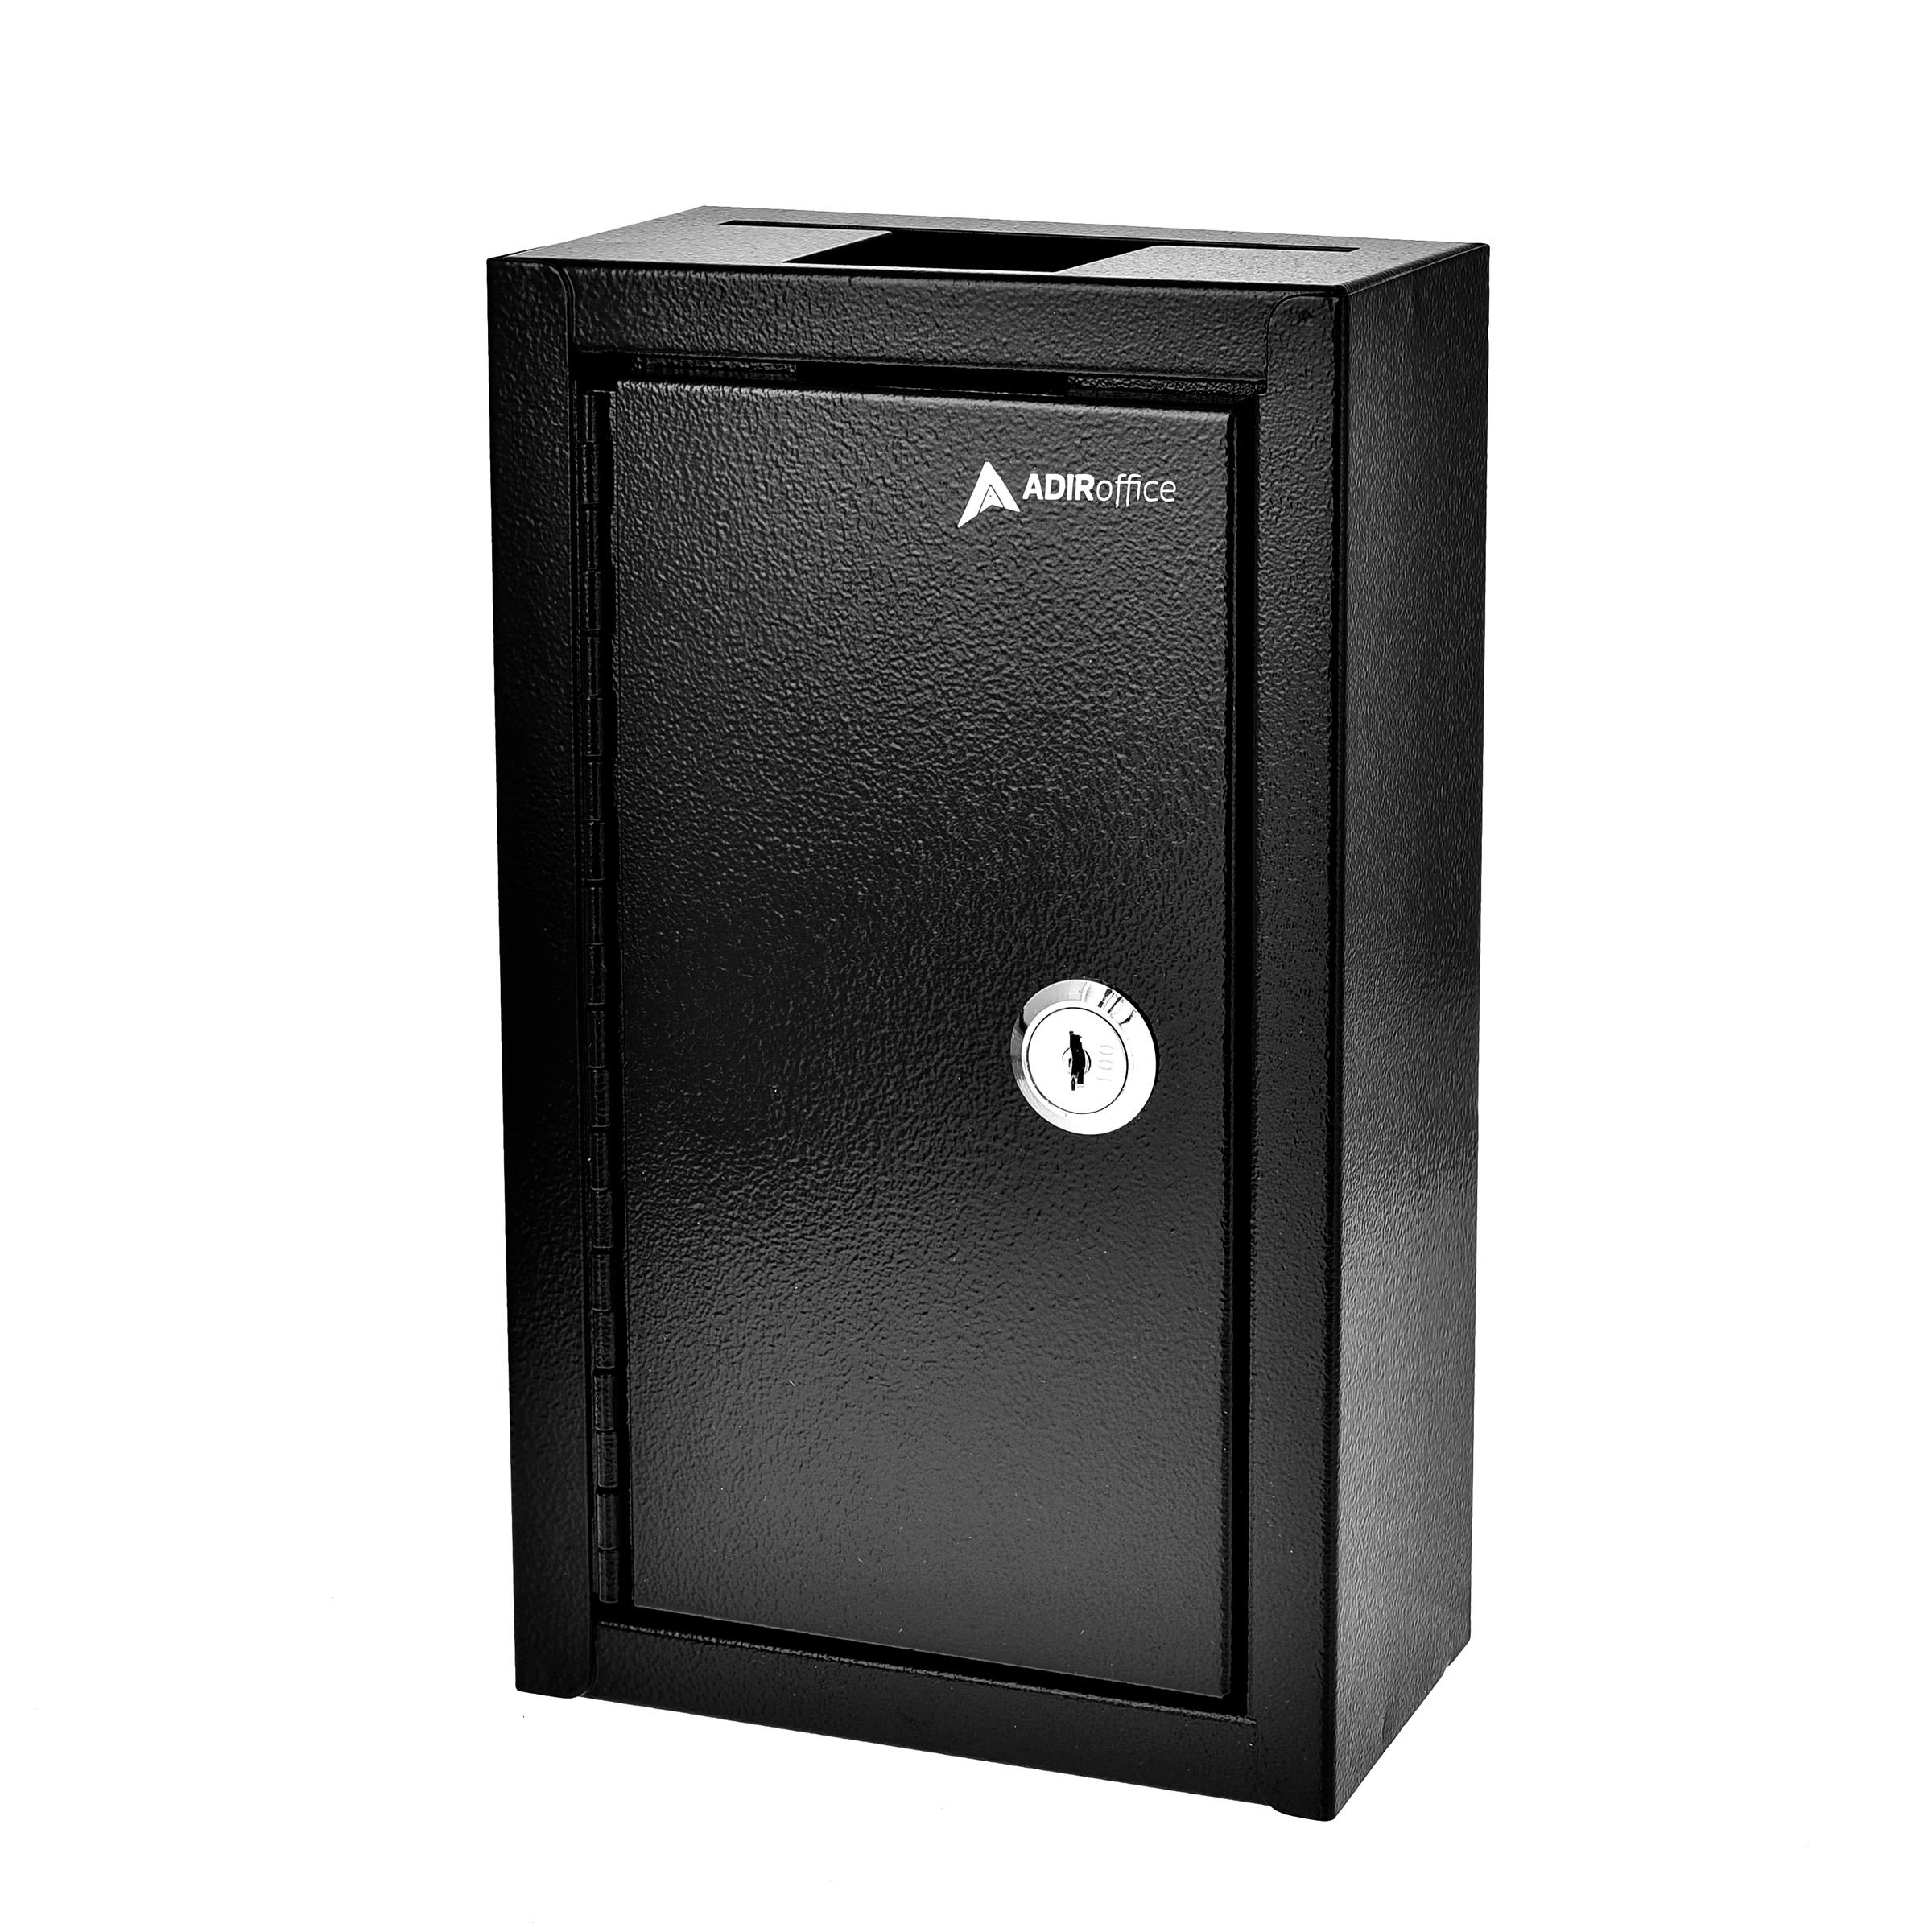 AdirOffice Large Key Drop Box - Large Capacity Commercial Grade Storage Box - Safe & Secure Parcel & Packages - for Home & Business Use (Black)